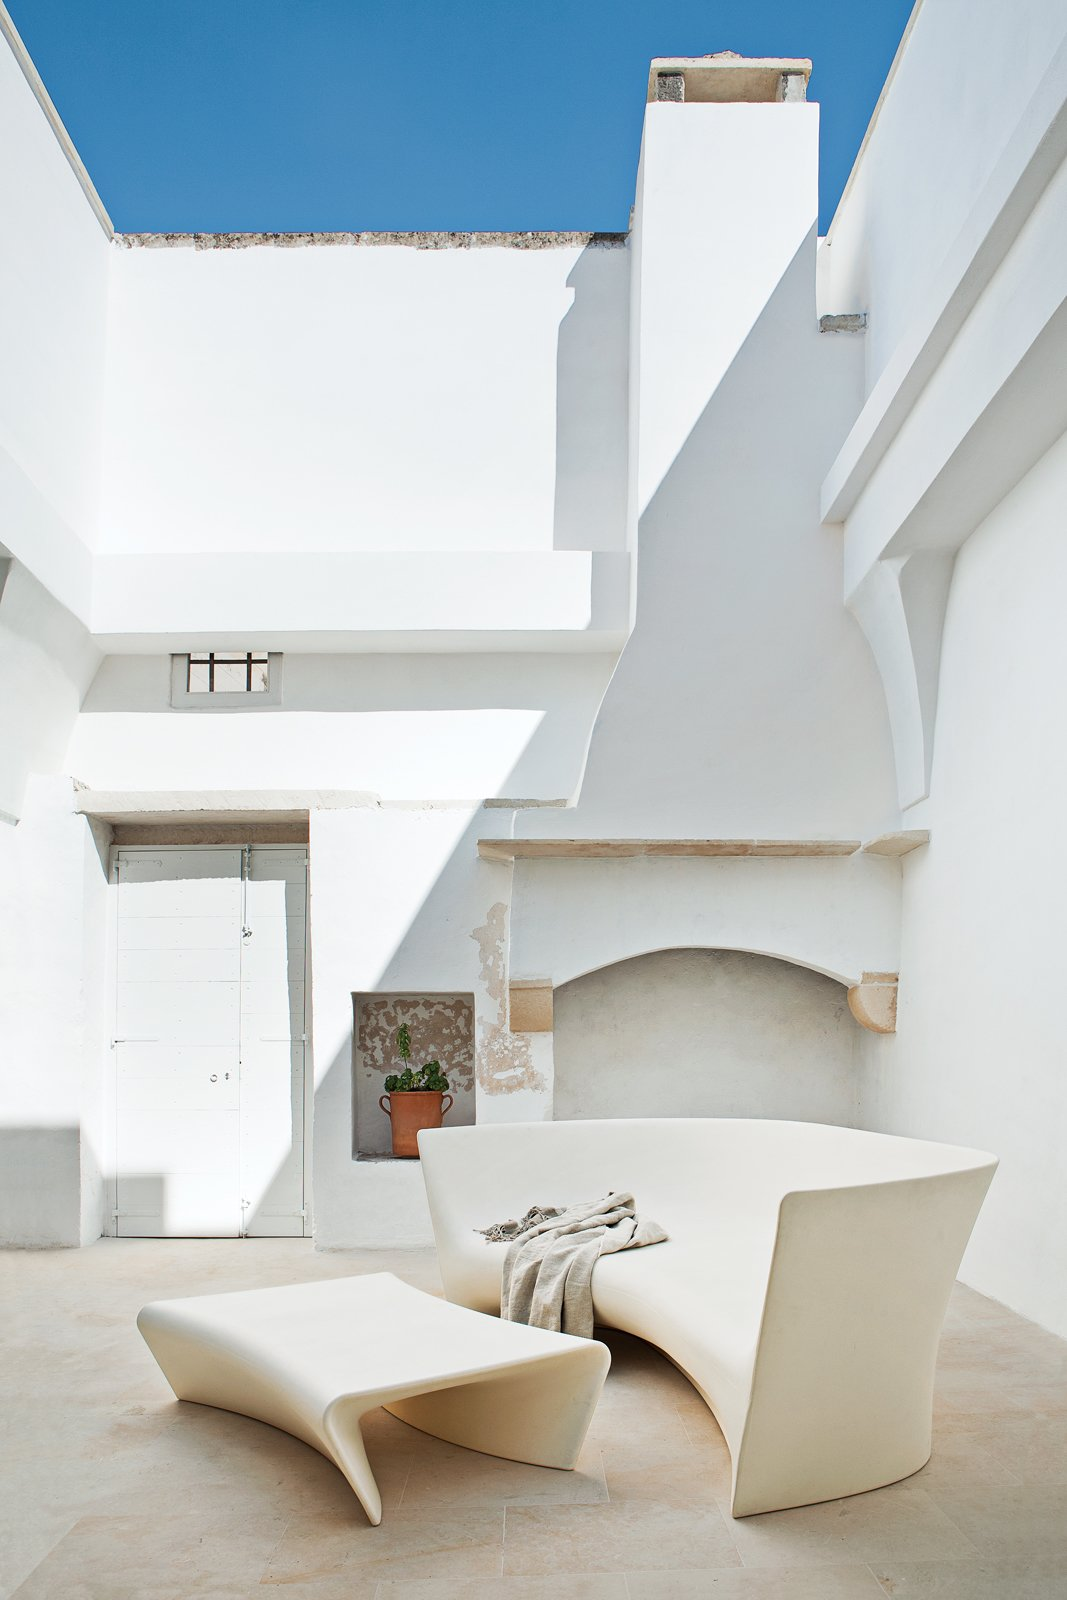 A mix of polyethylene seating and rustic stonework is in the home's courtyard.  Photo 5 of 8 in Modern Meets Ancient in a Renovated Italian Vacation Home